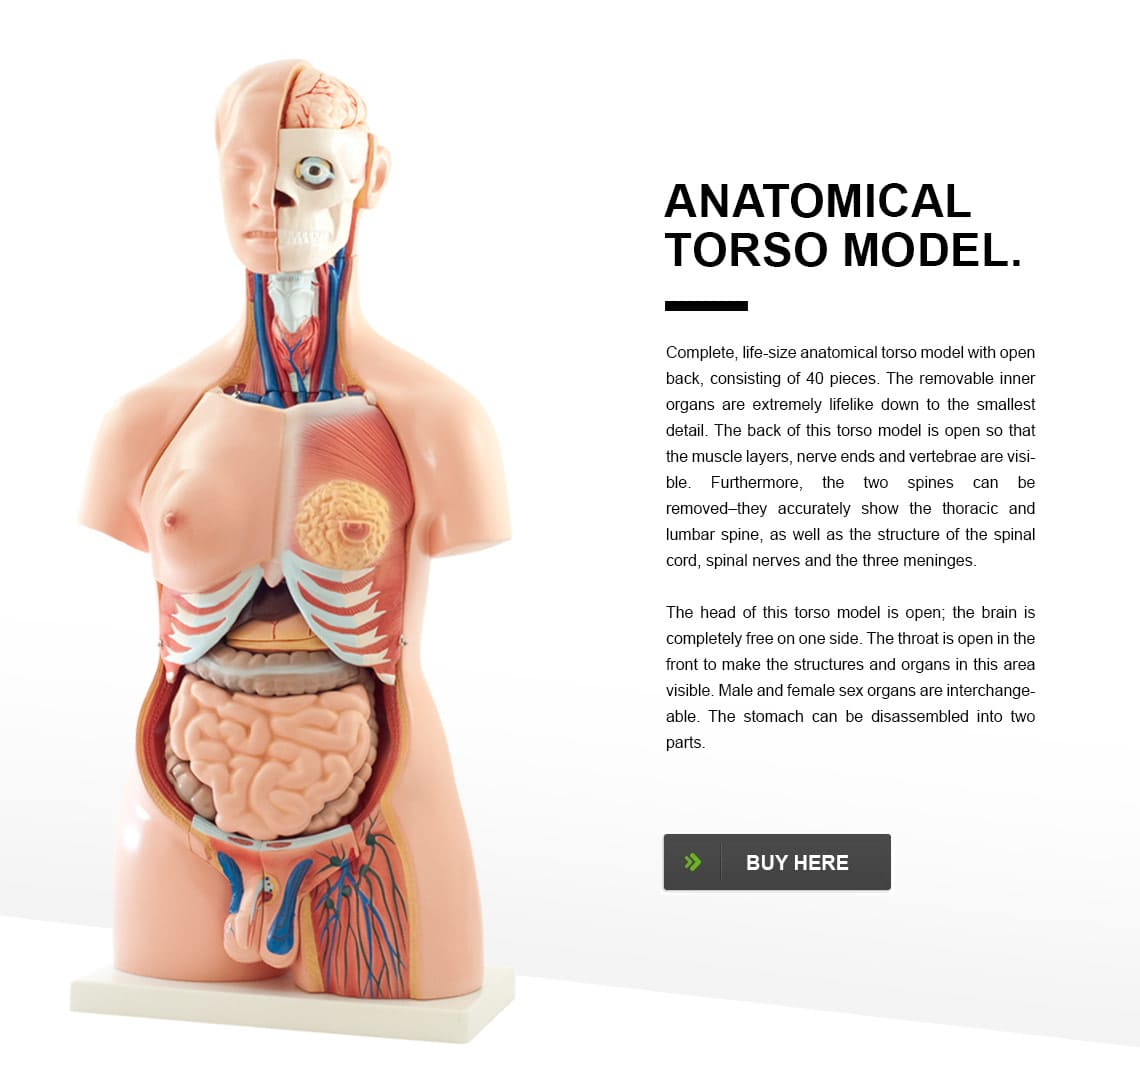 Anatomical Torso Model